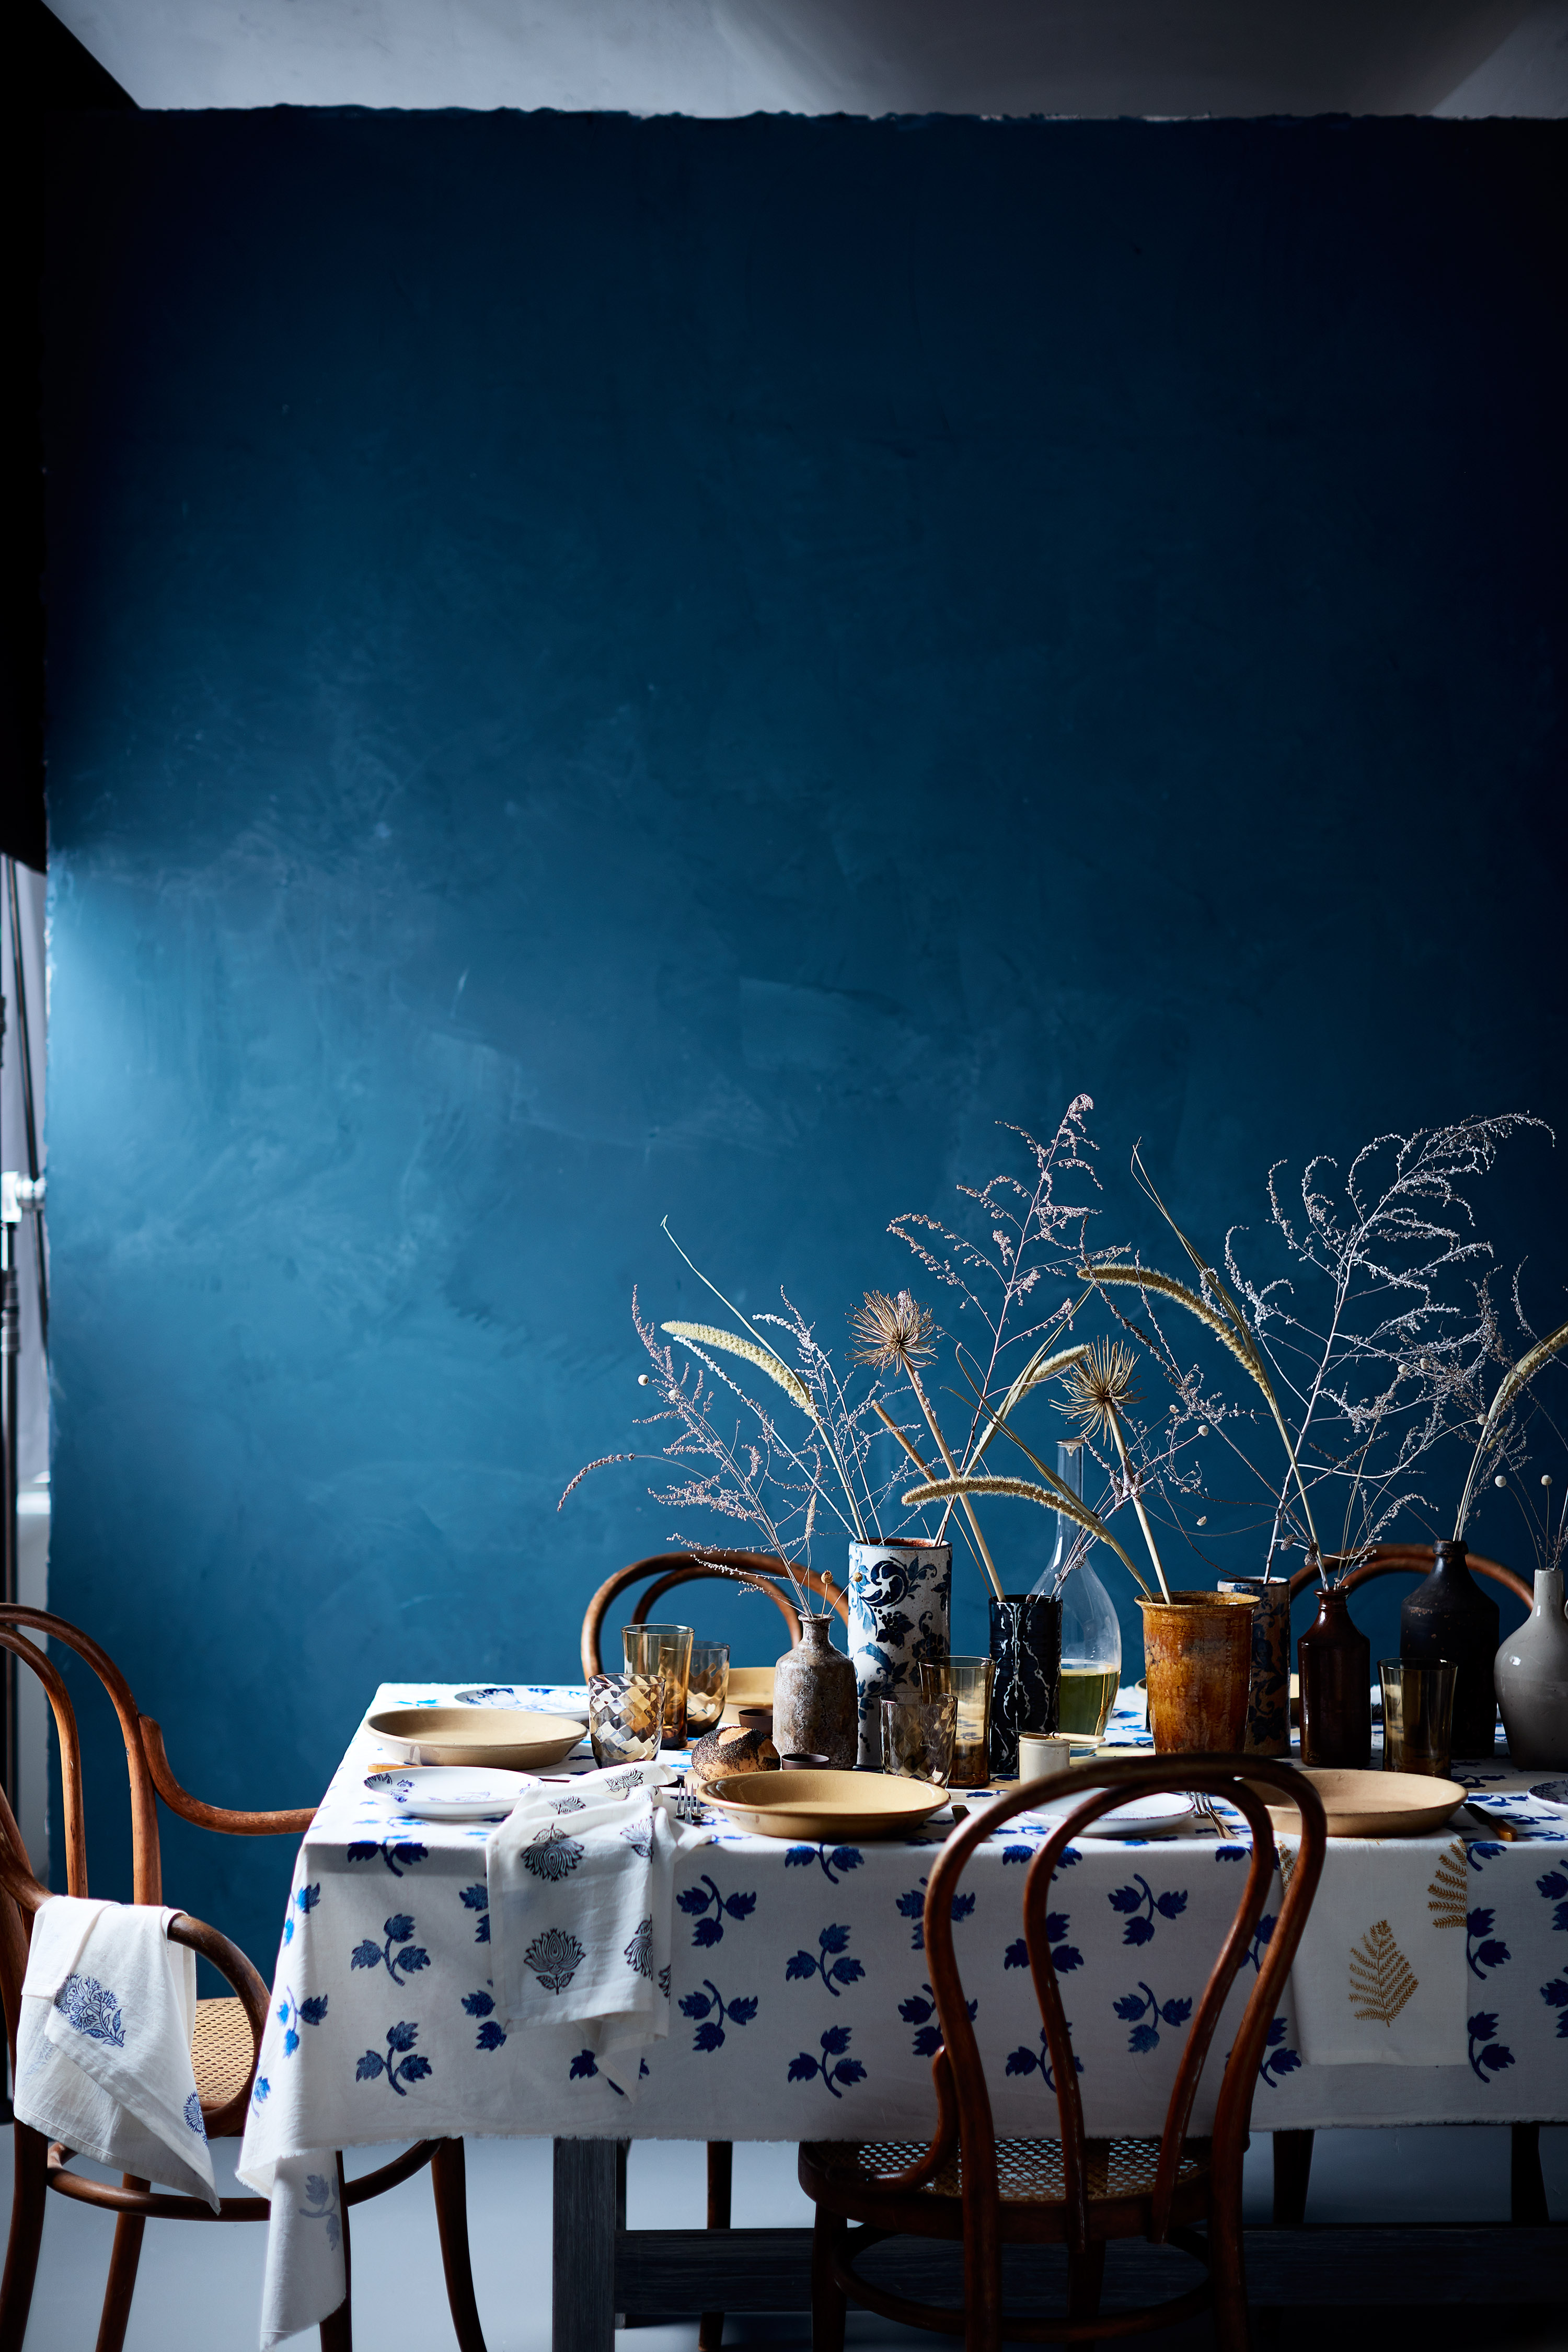 This Thanksgiving Table is Inspired by Serene Blue and Indigo Colors